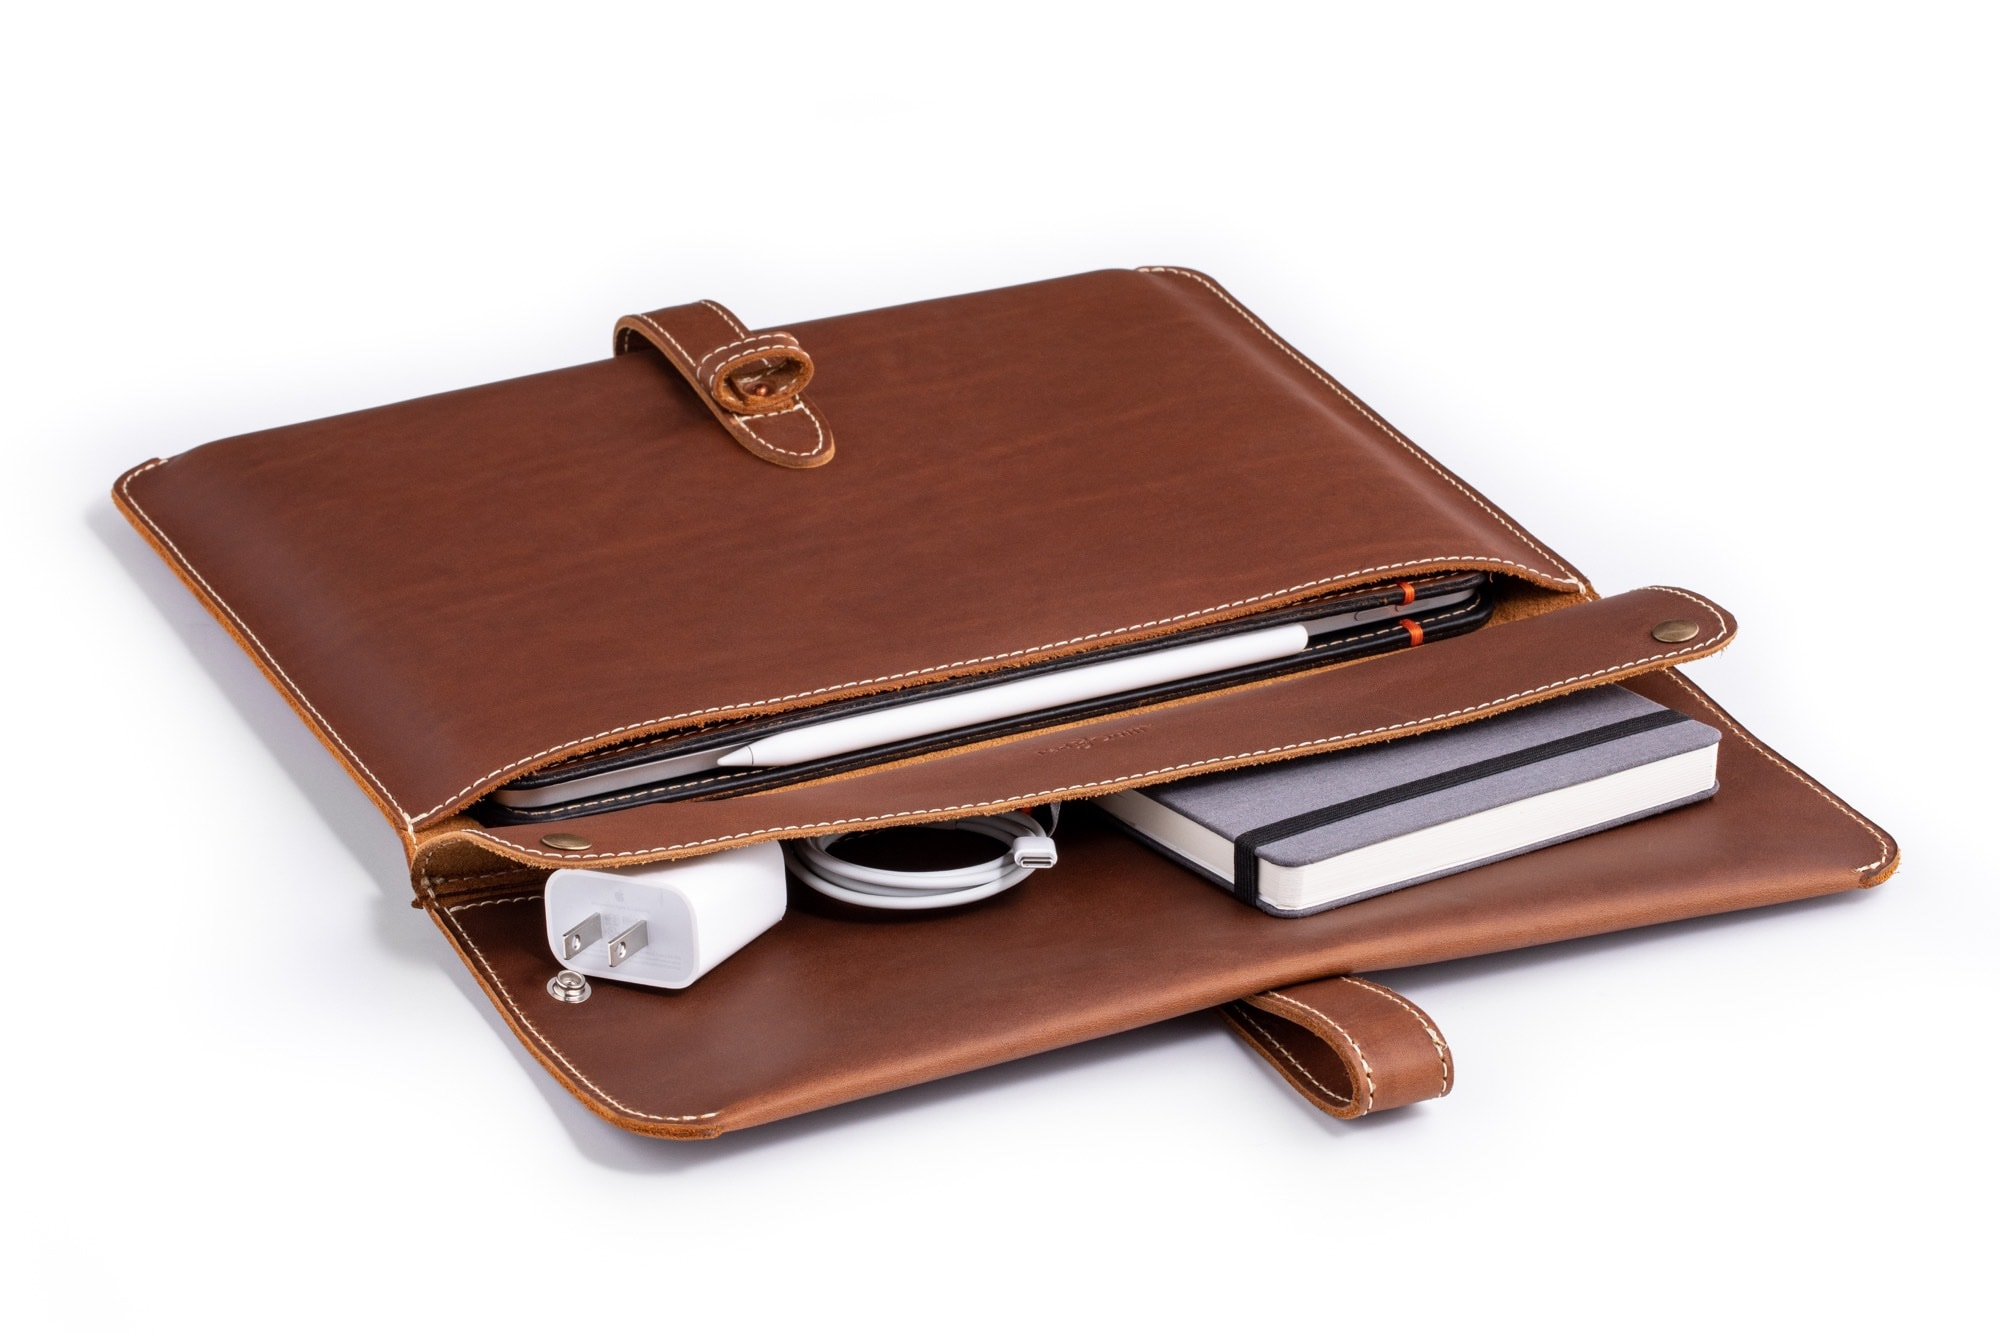 Both the main section and the pocket remain accessible when the Oxford iPad Sleeve sits flat on the desk.